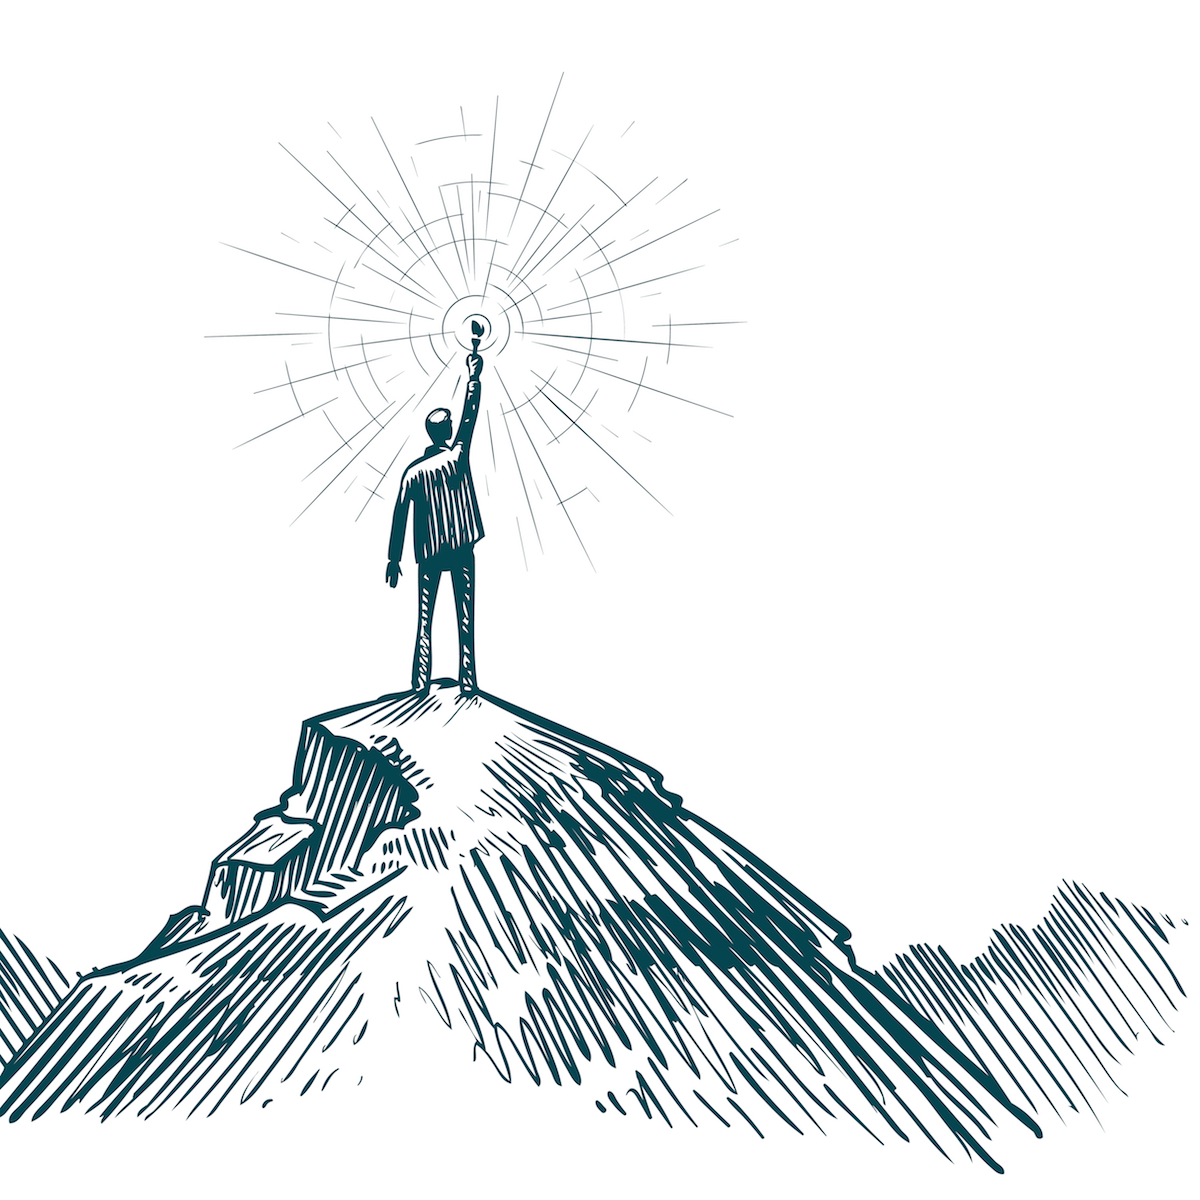 Image of person on top of mountain holding a torch.